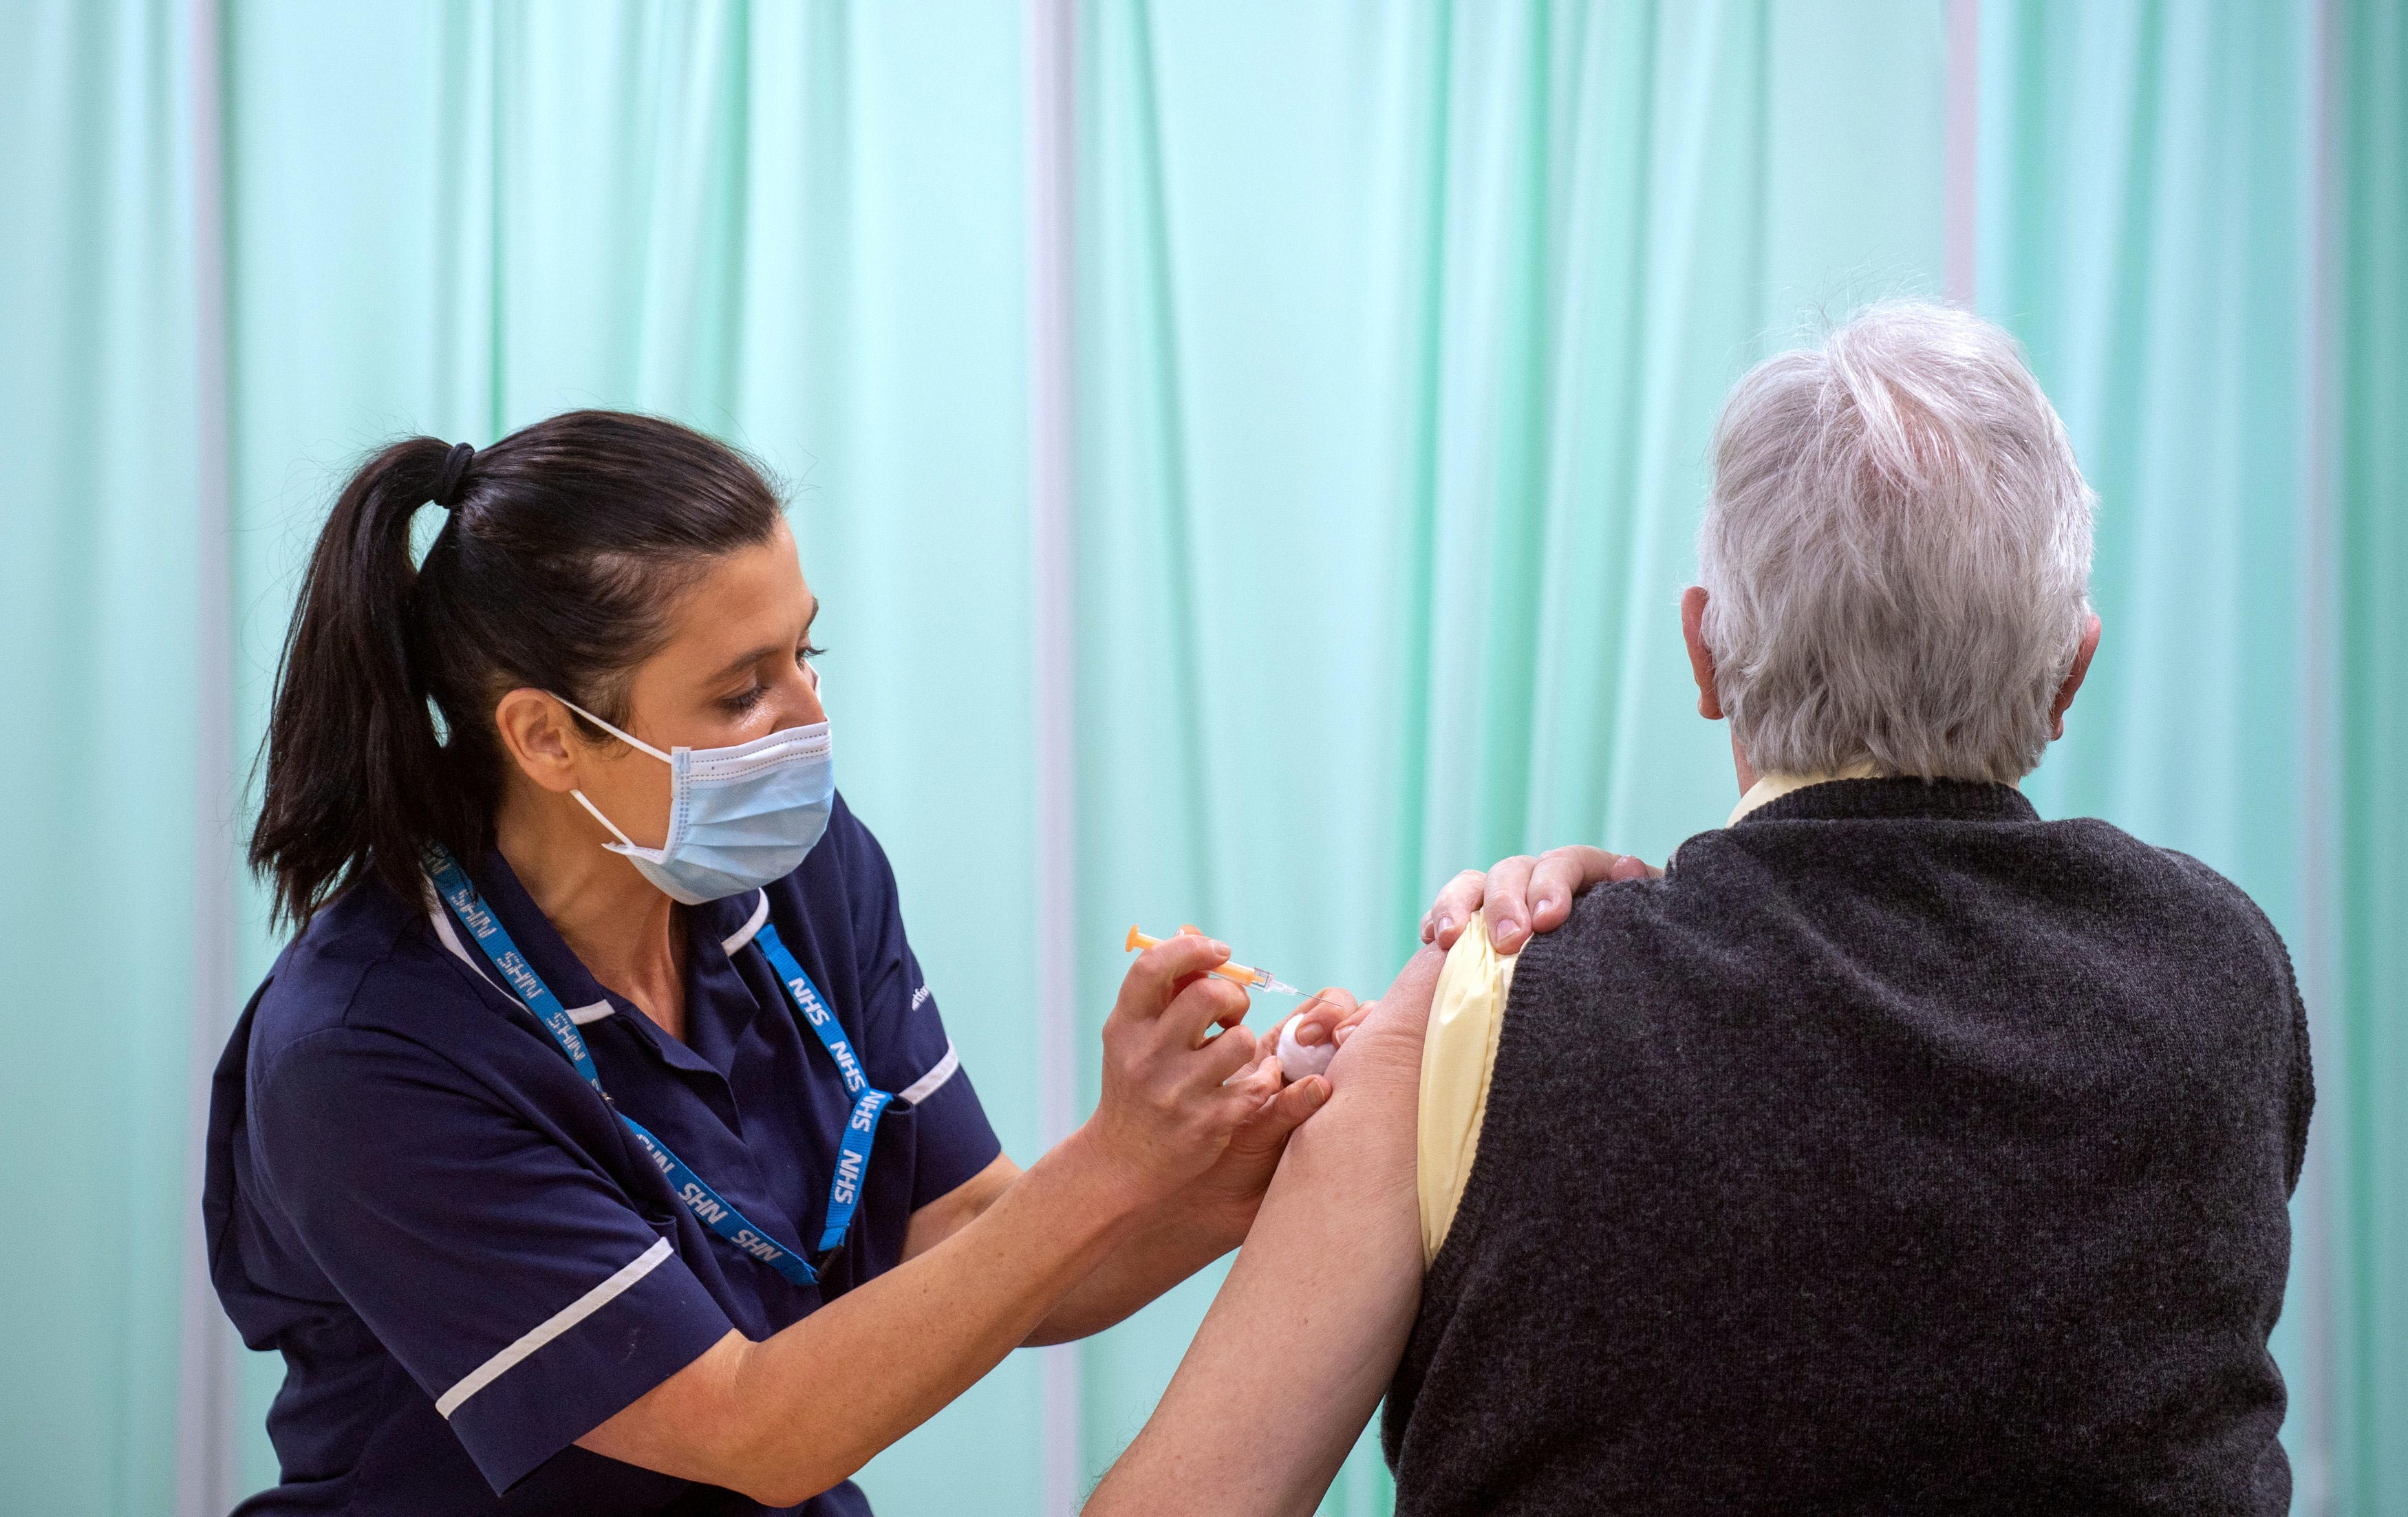 A patient receives an injection of a Covid-19 vaccine at the NHS vaccine centre at Robertson House on January 11 in Stevenage, England.